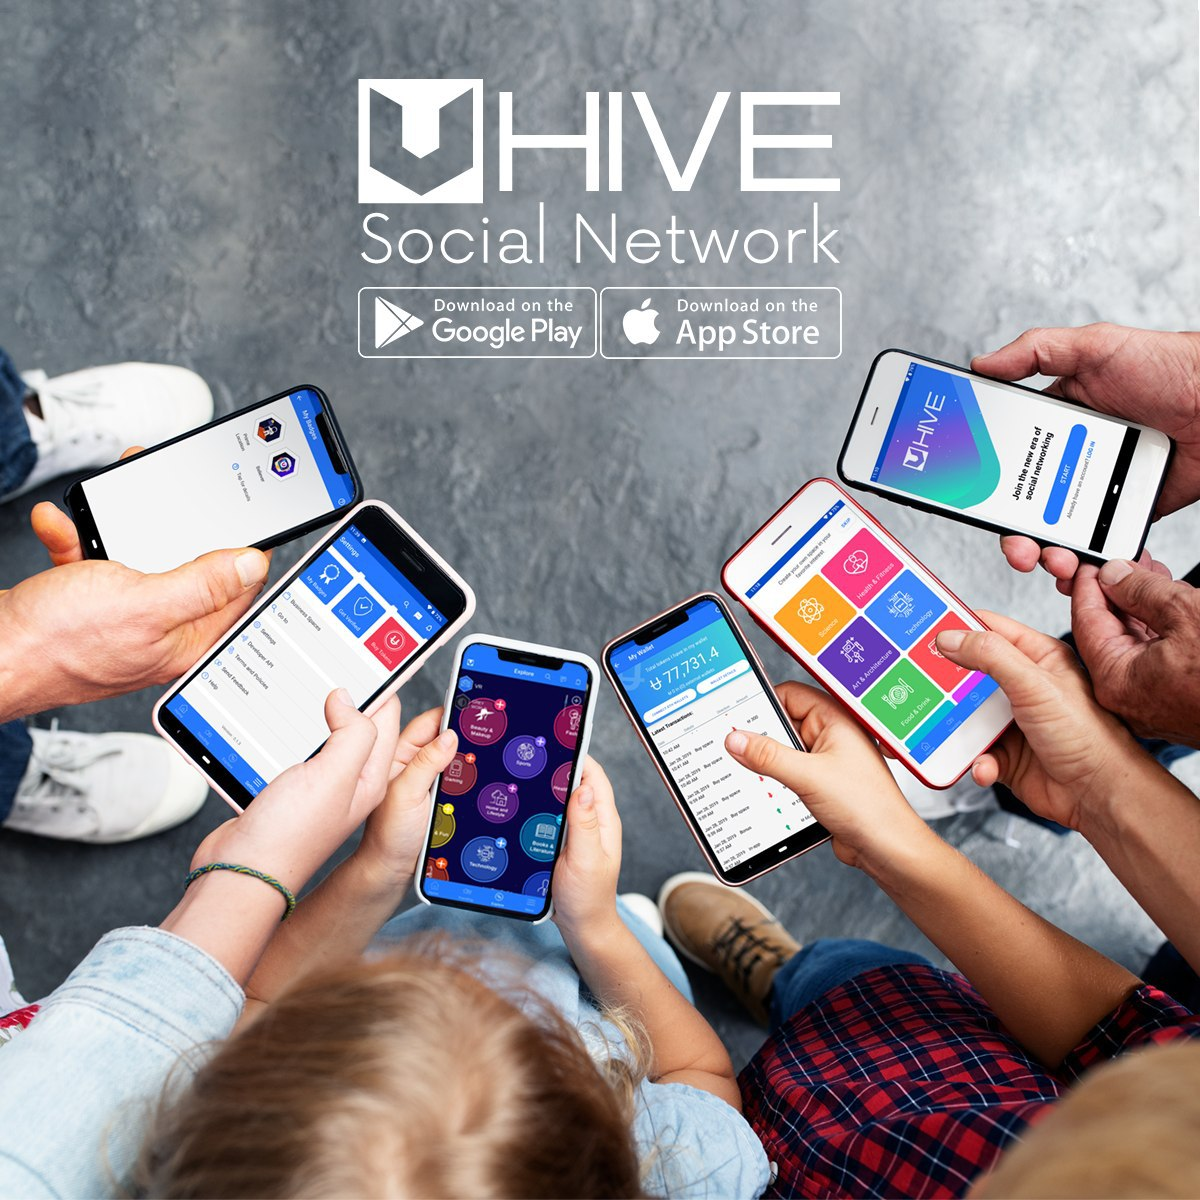 Join Uhive